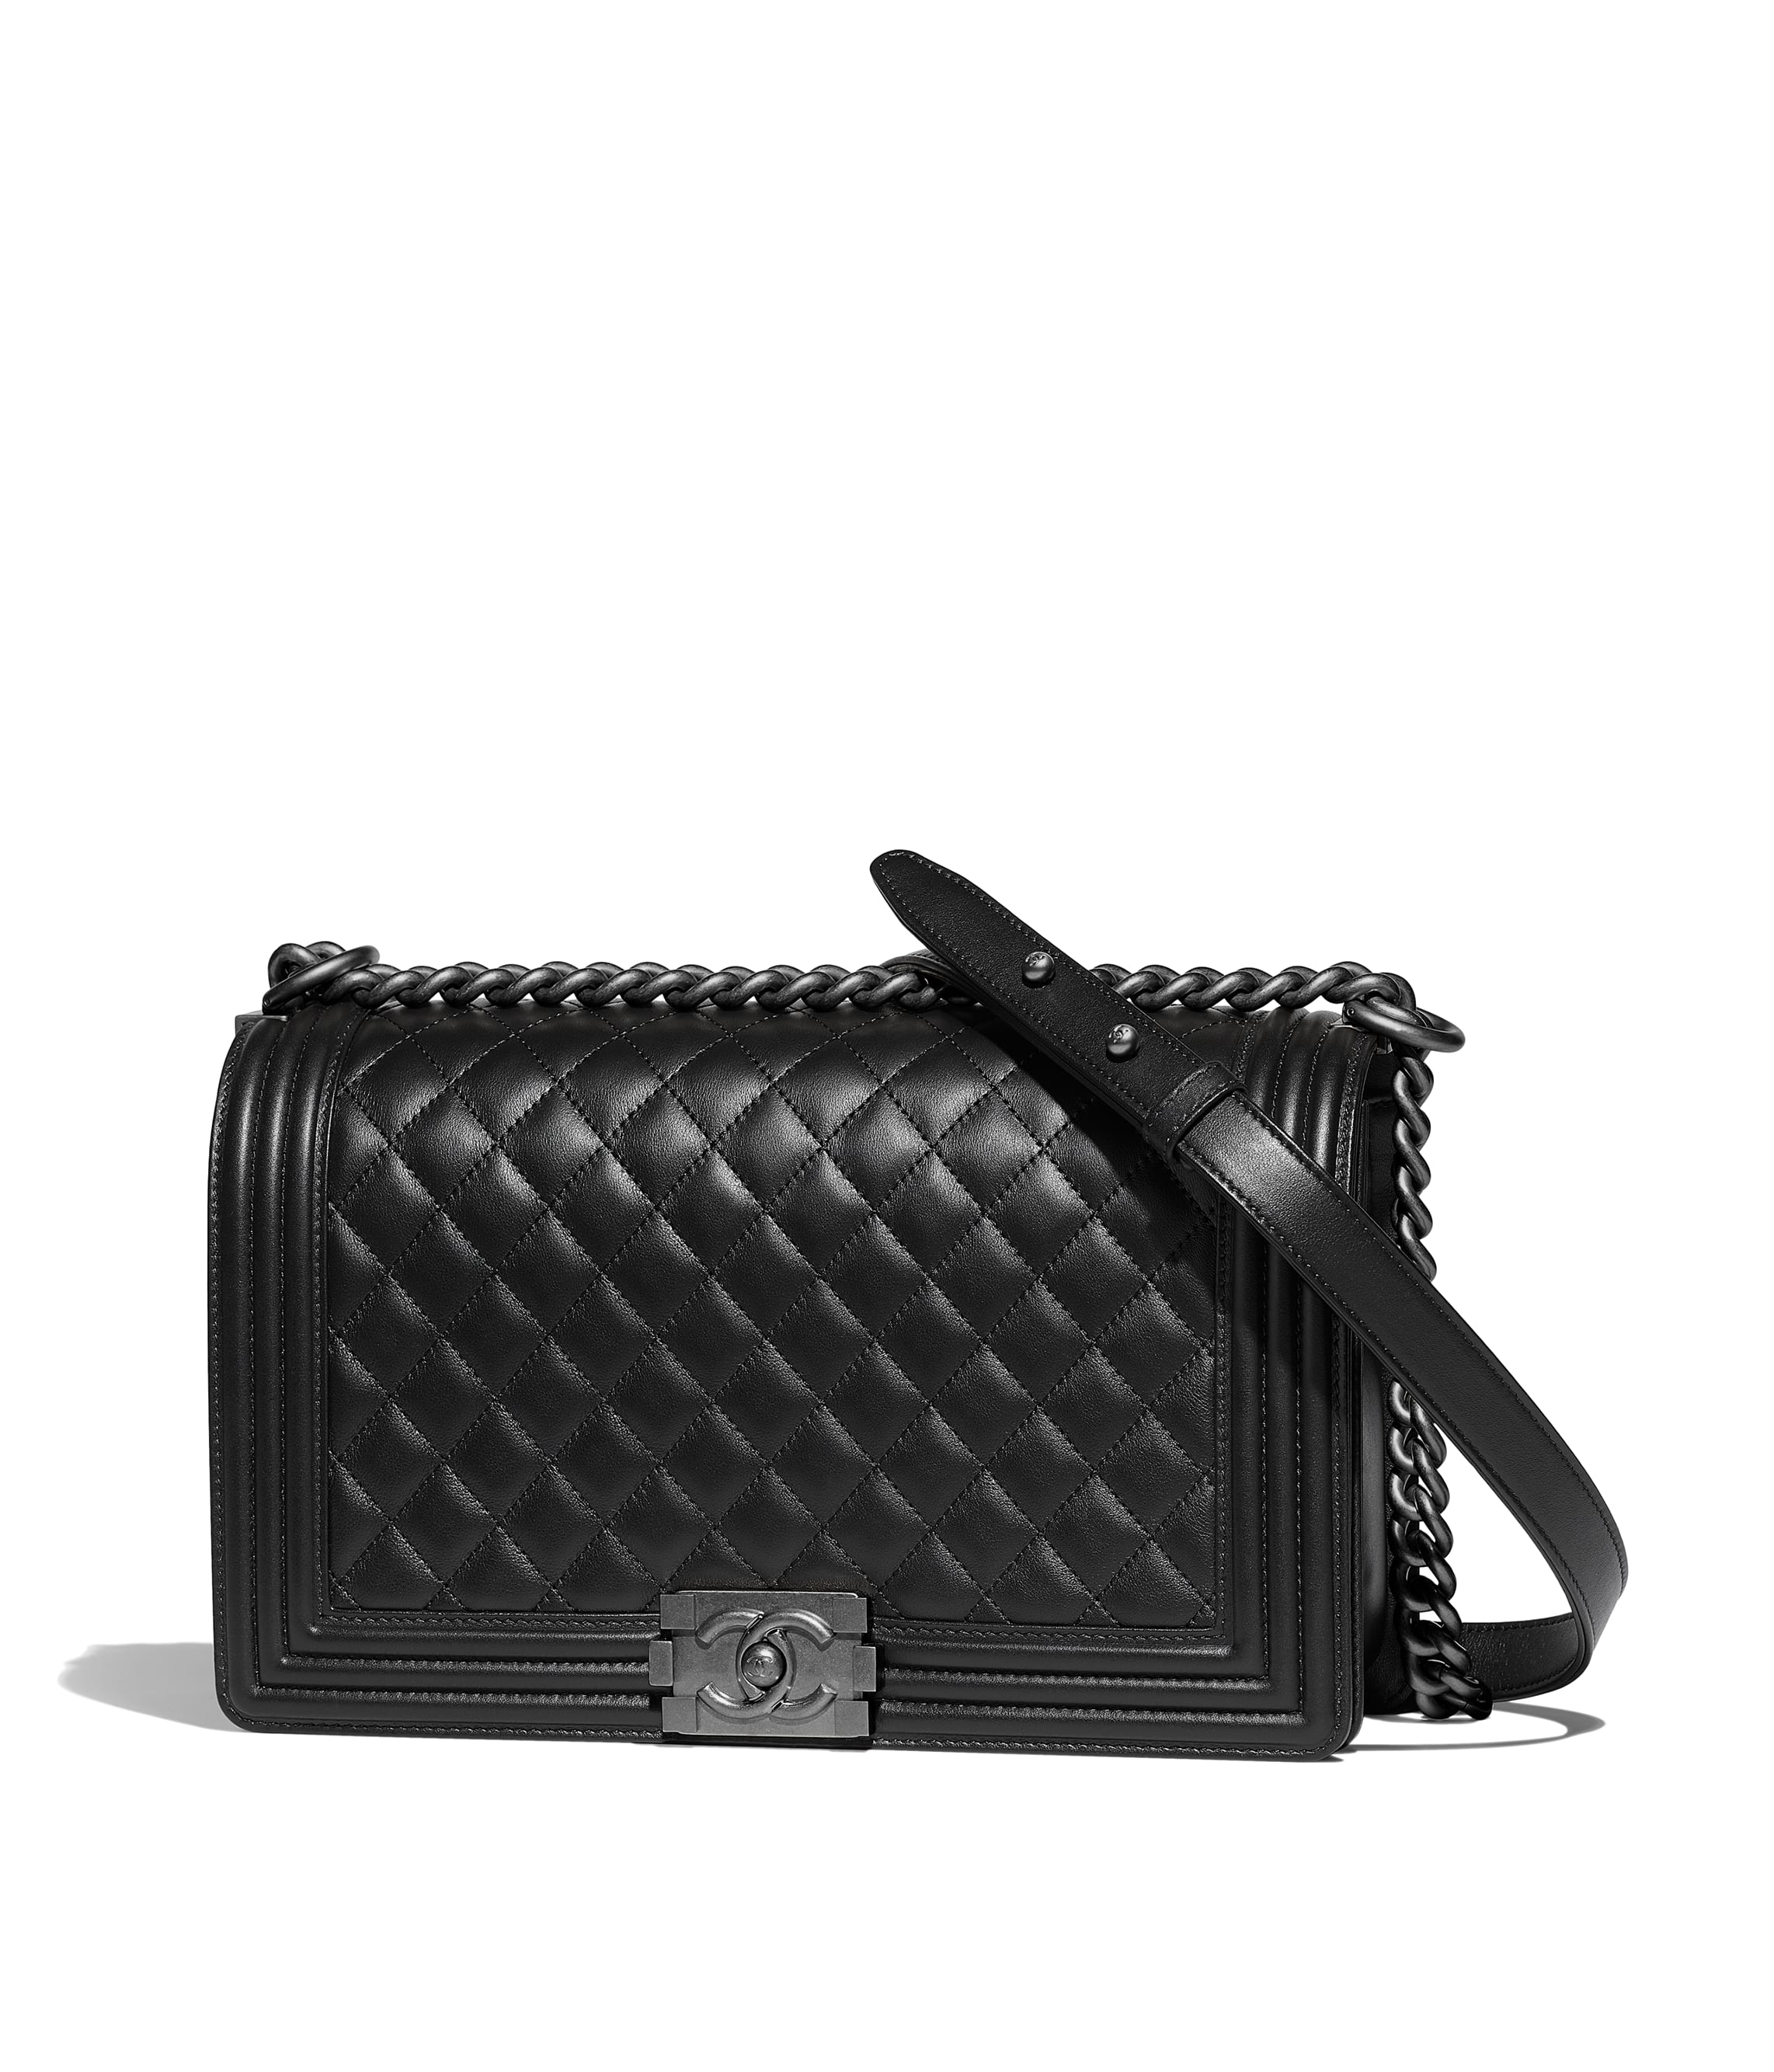 d0a0a9dd28ec Large BOY CHANEL Handbag, calfskin & ruthenium-finish metal, black ...